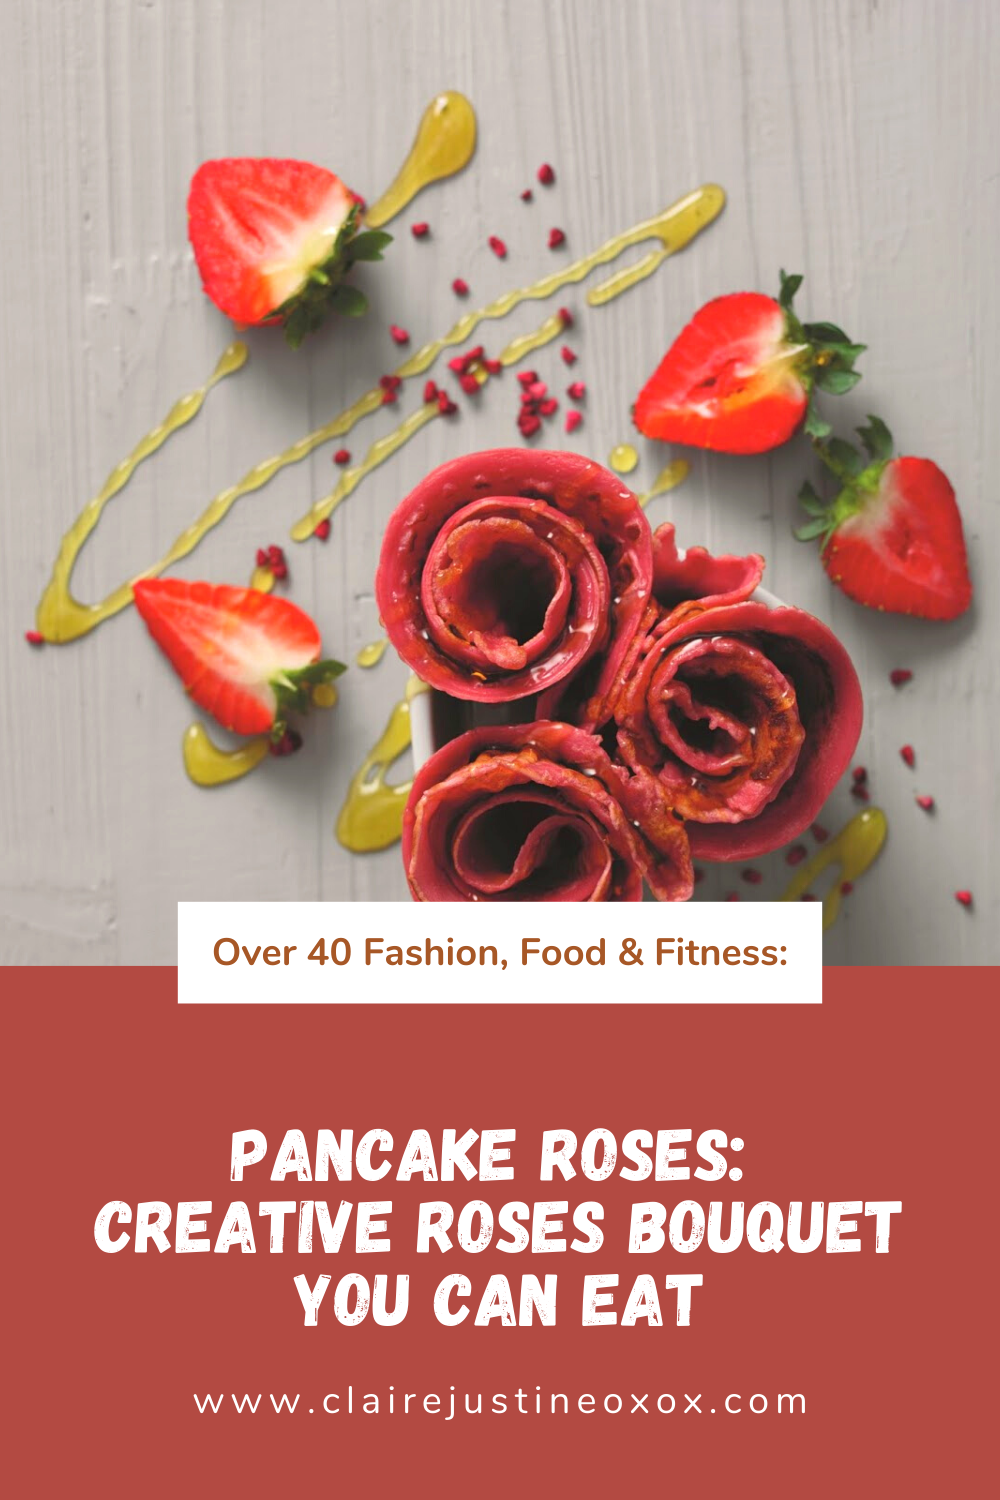 Pancake Roses: Creative Roses Bouquet You Can Eat.